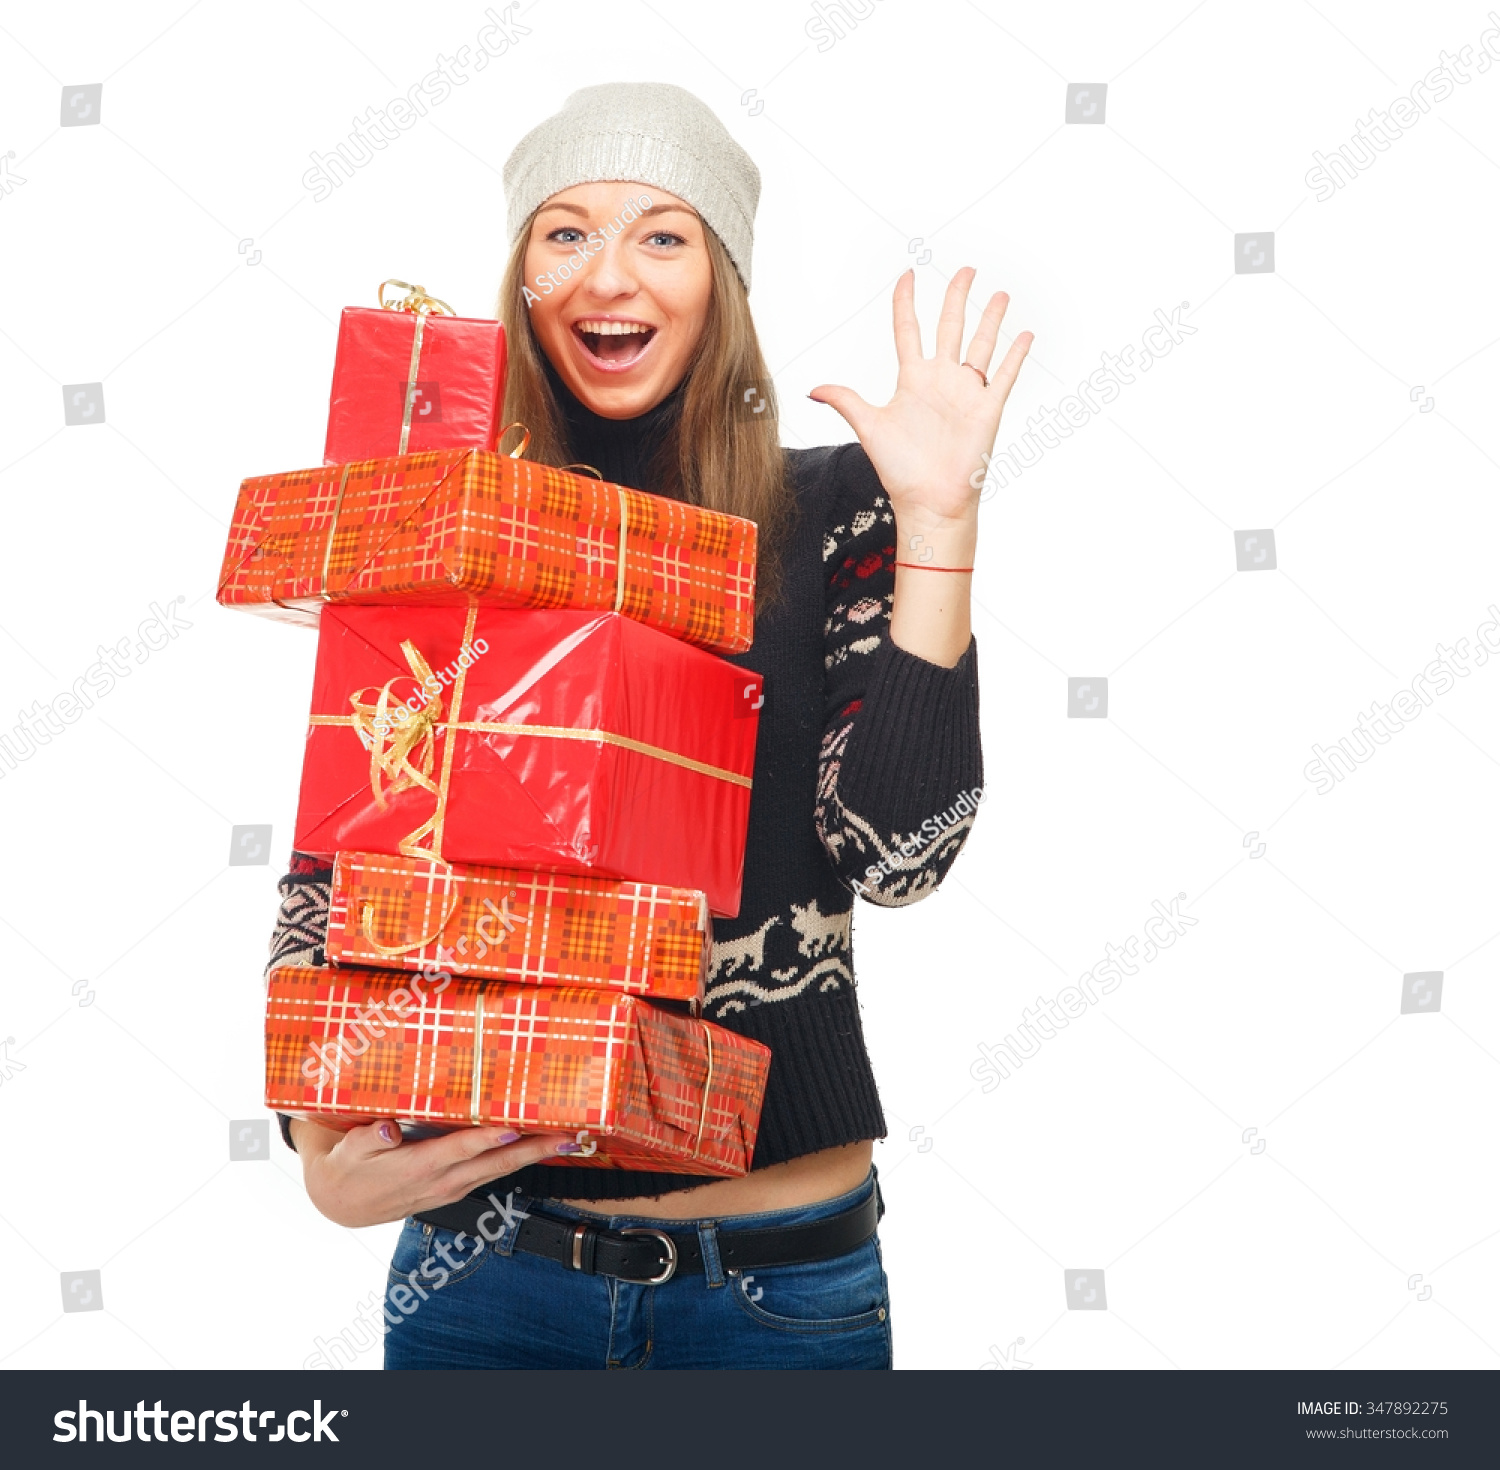 Woman Winter Sweater Holding Boxes Gifts Stock Photo 347892275 ...